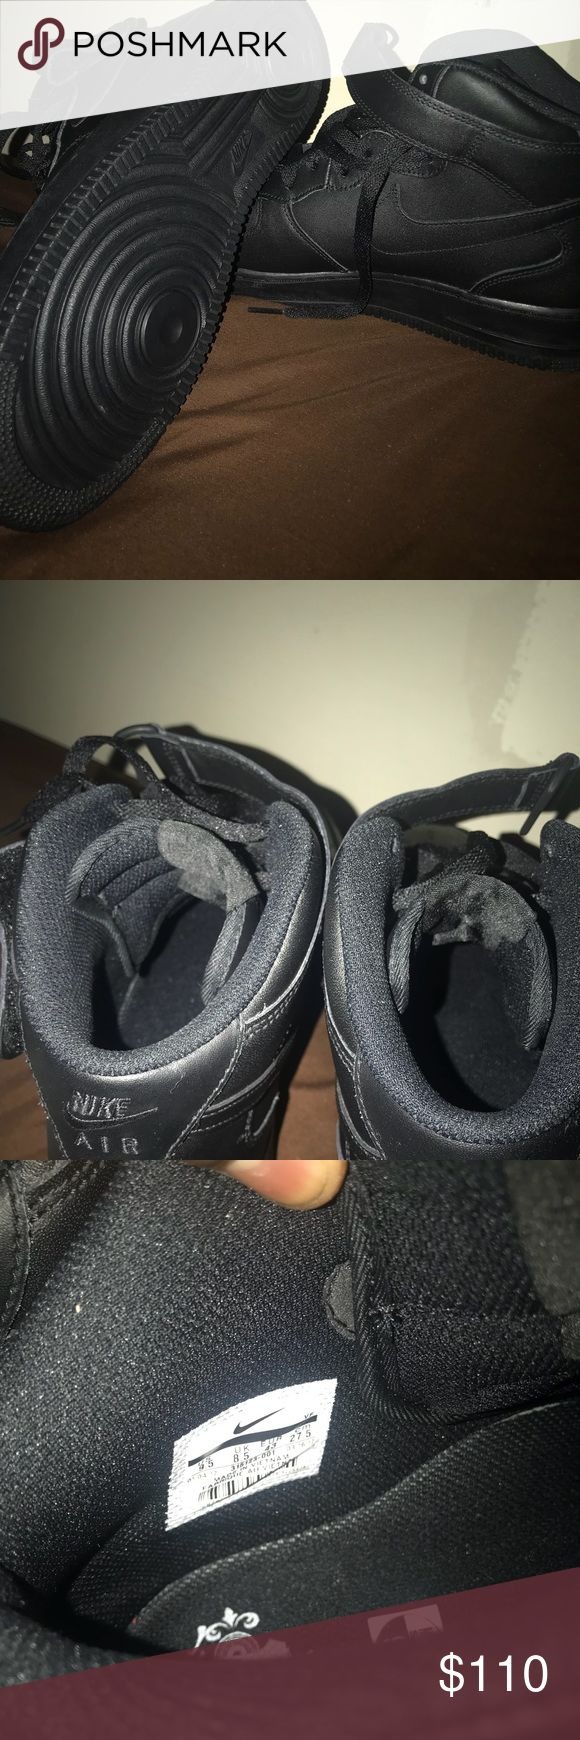 All black forces All black high top's, used once, not asking for to much, hmu air forces Shoes Sneakers